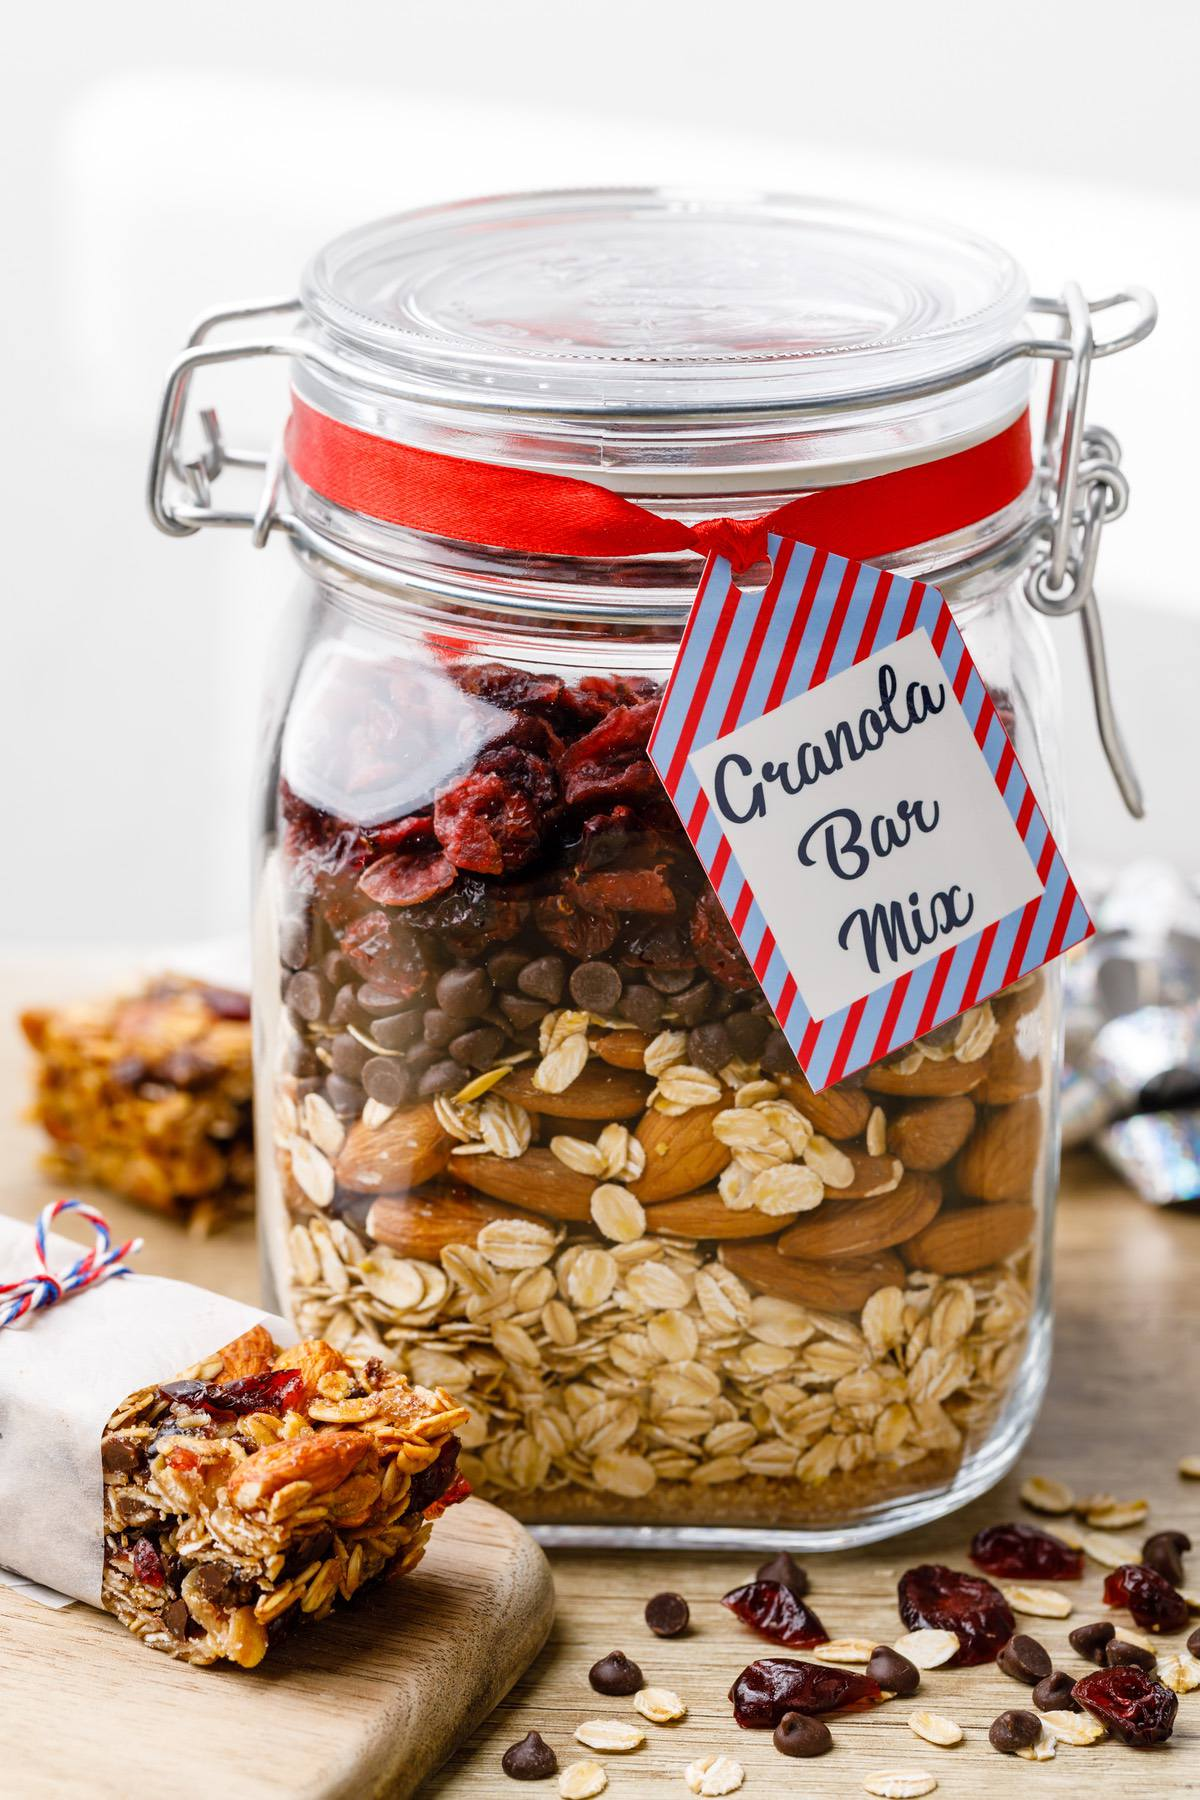 Homemade Granola Bar Recipe